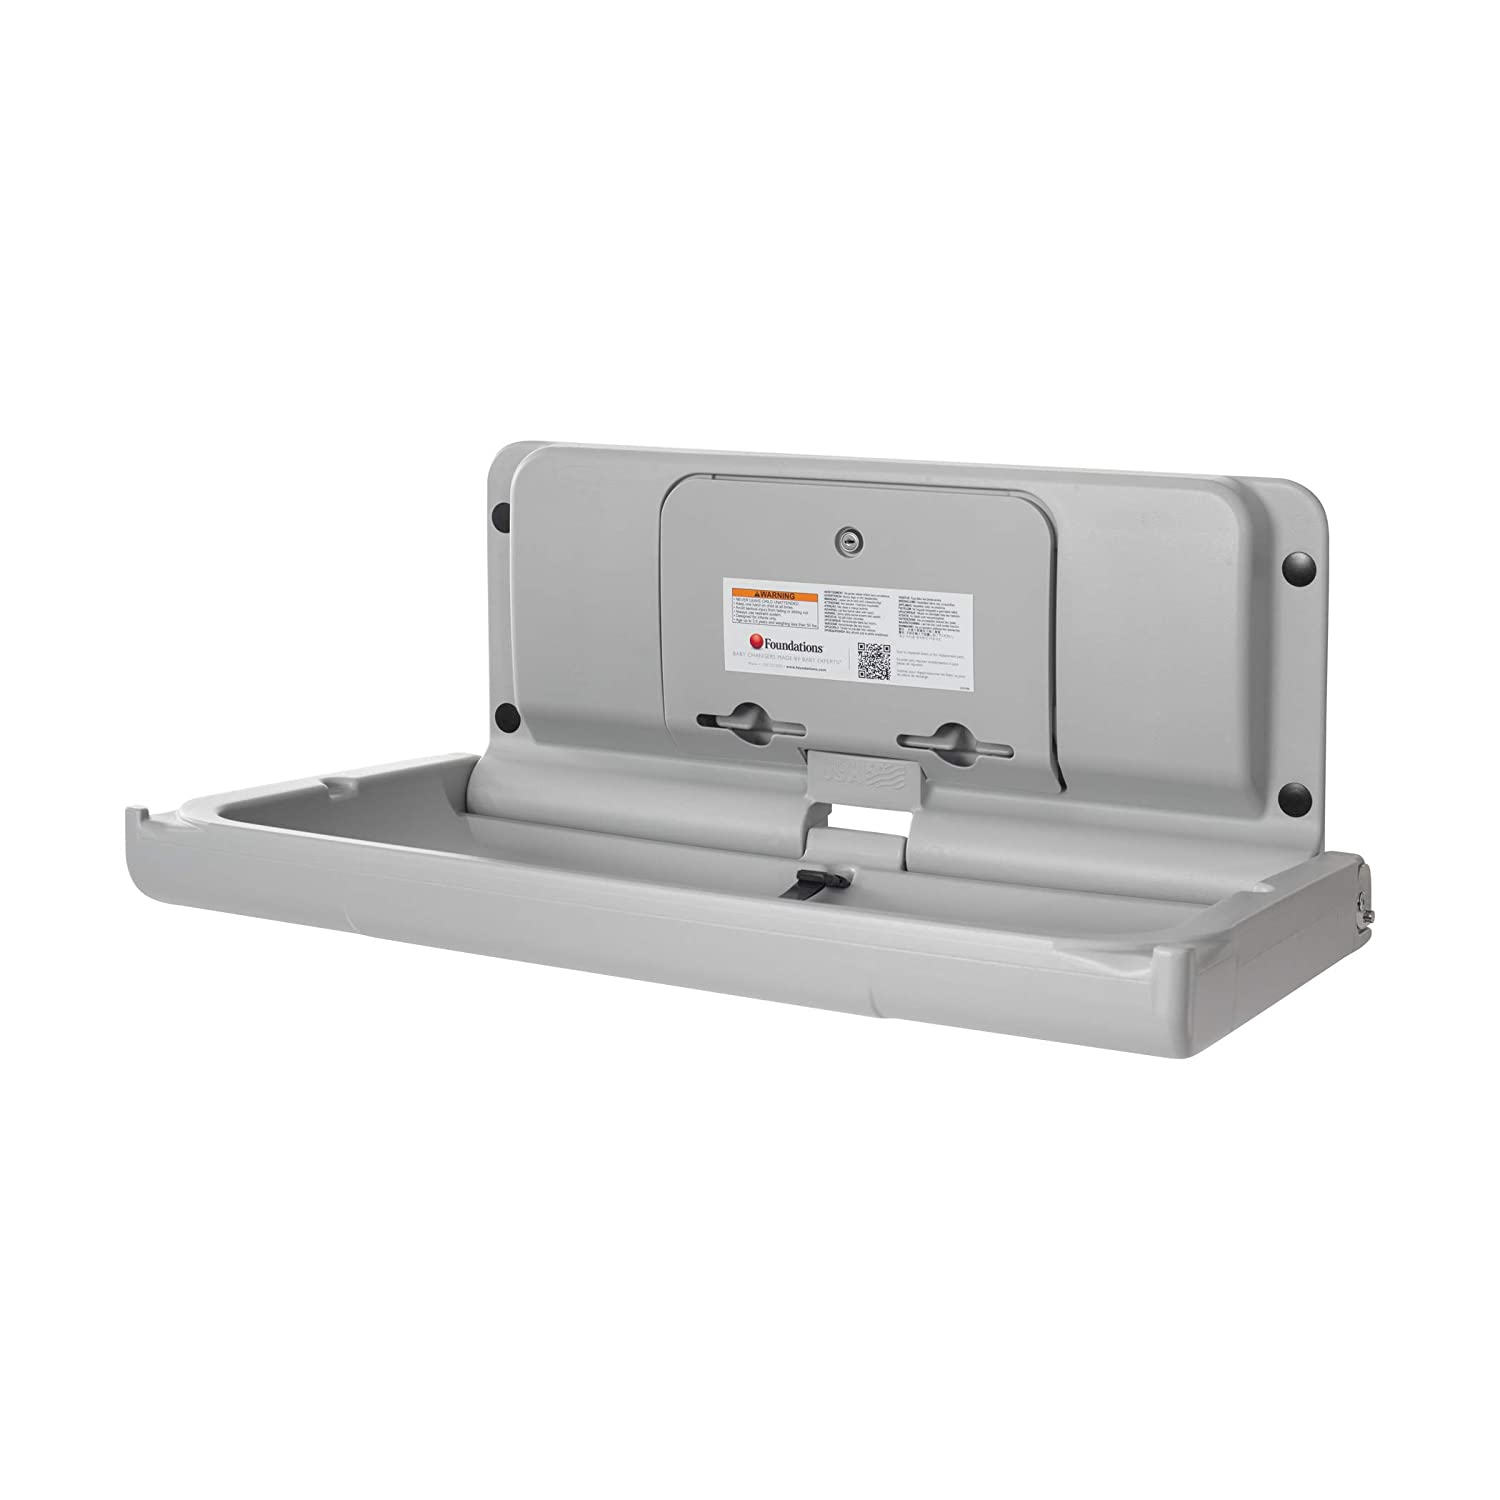 Foundations Ultra 200-EH Horizontal Wall-Mounted Baby Changing Station Black//Stainless